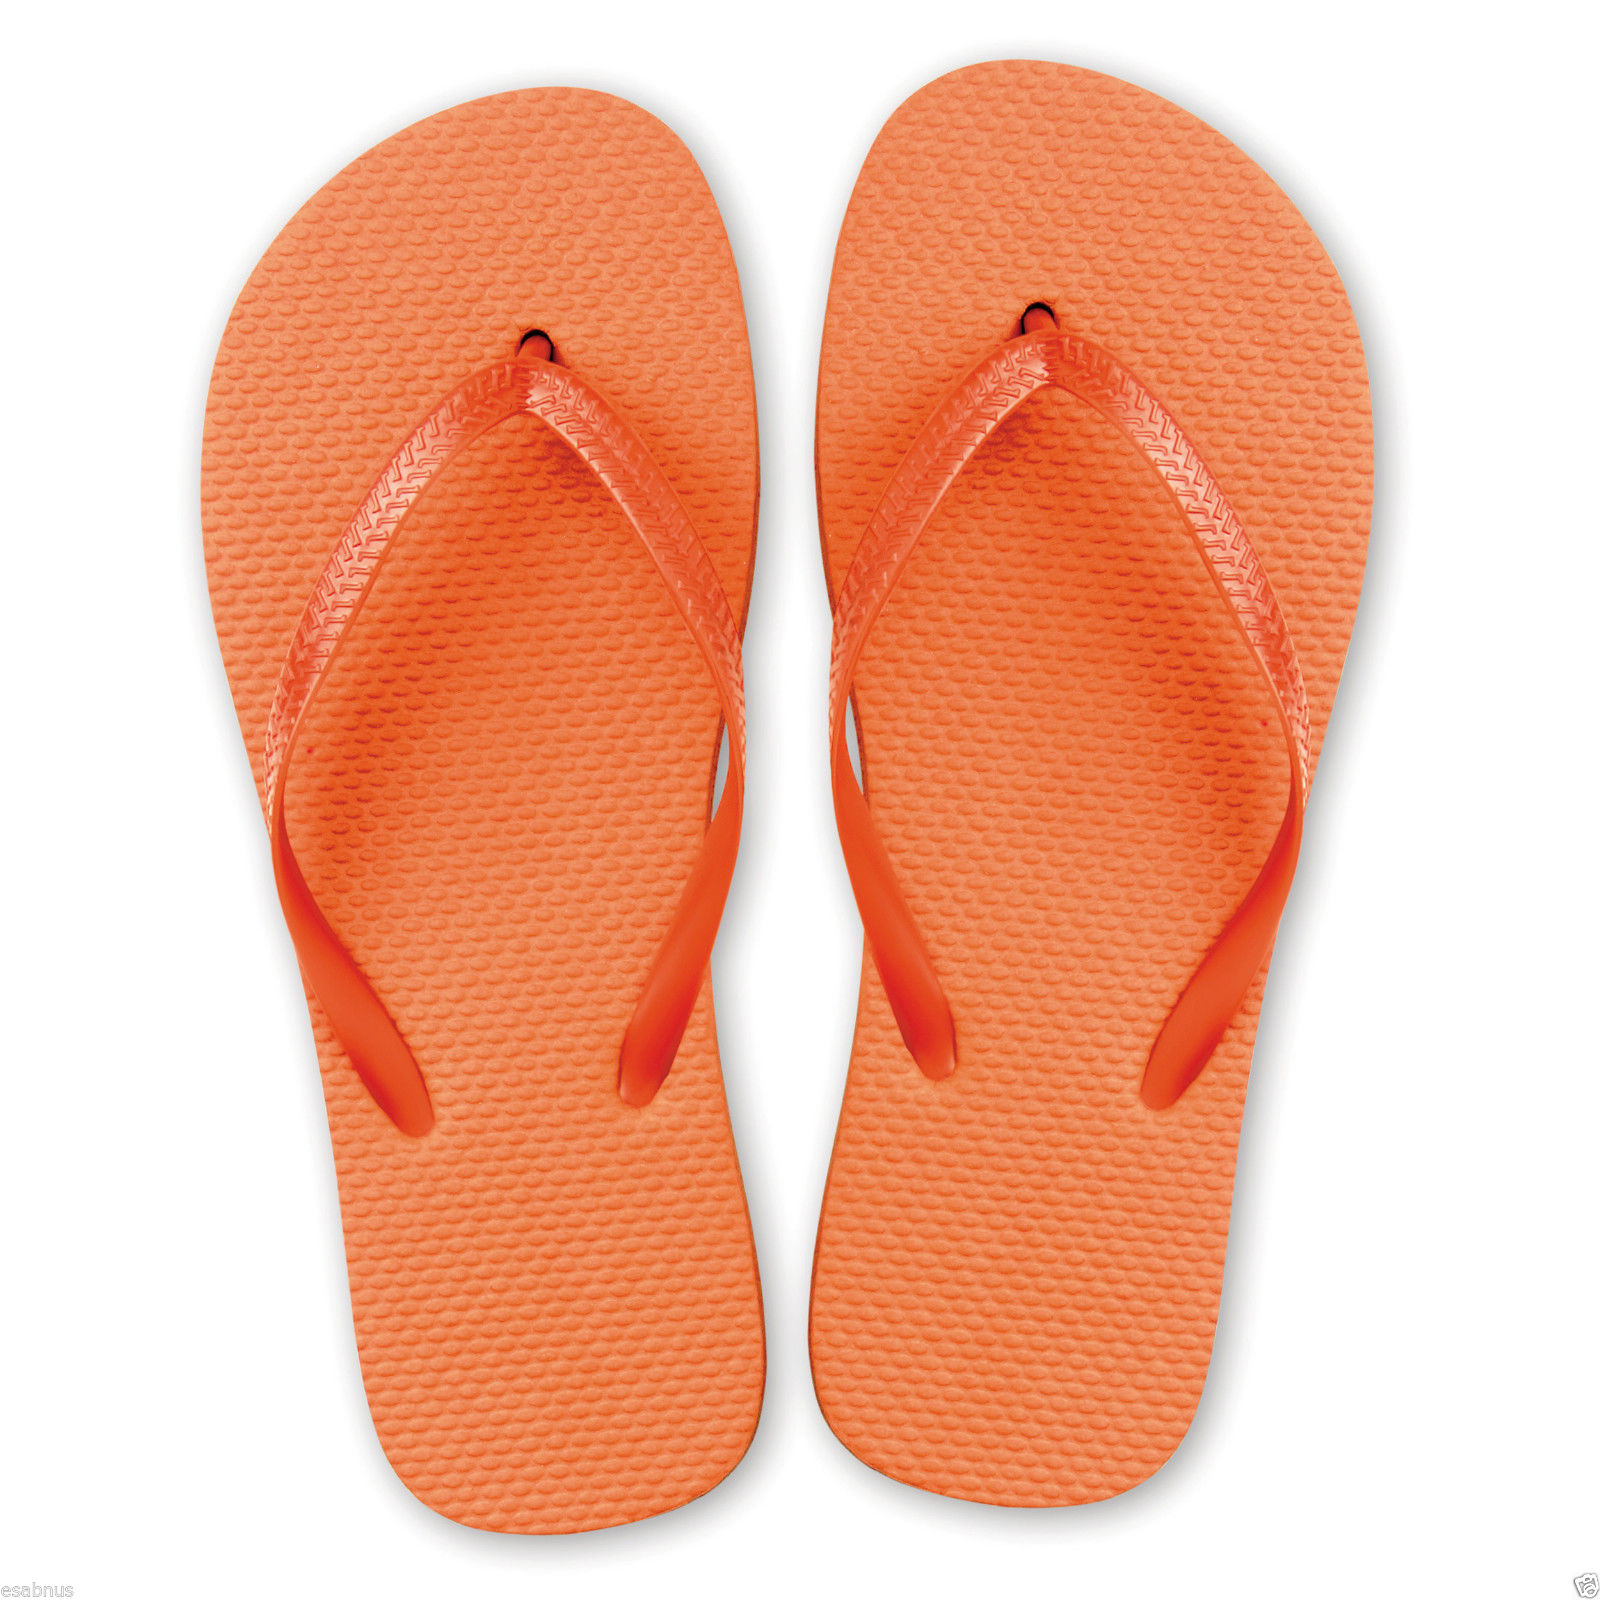 Clarks flip flops define breezy summer style and are perfect for beach days and summer nights. Women's Flip Flop Sandals - Clarks® Shoes Official Site We've noticed that your browser does not support JavaScript.